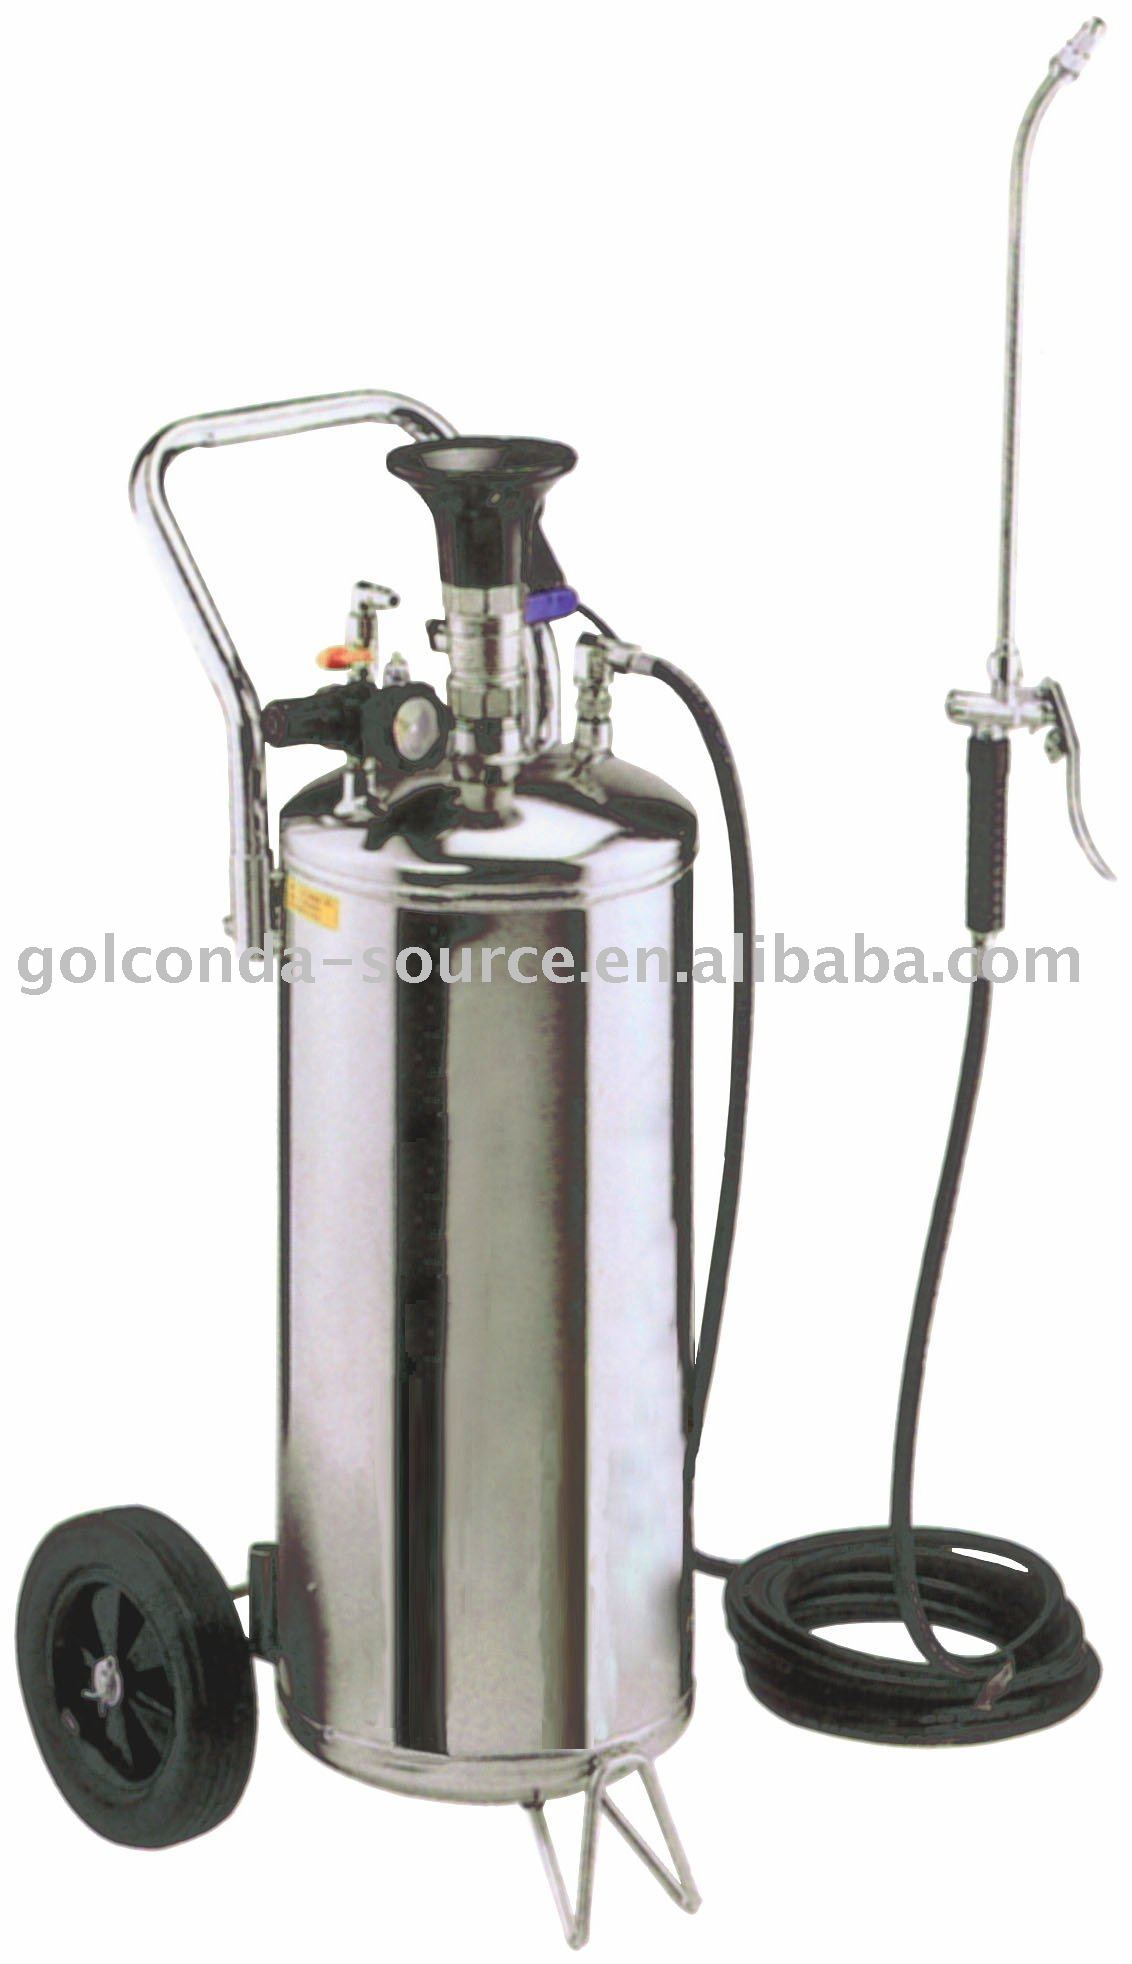 30 LITER PNEUMATIC FLUID ATOMISER (GS-5560F)